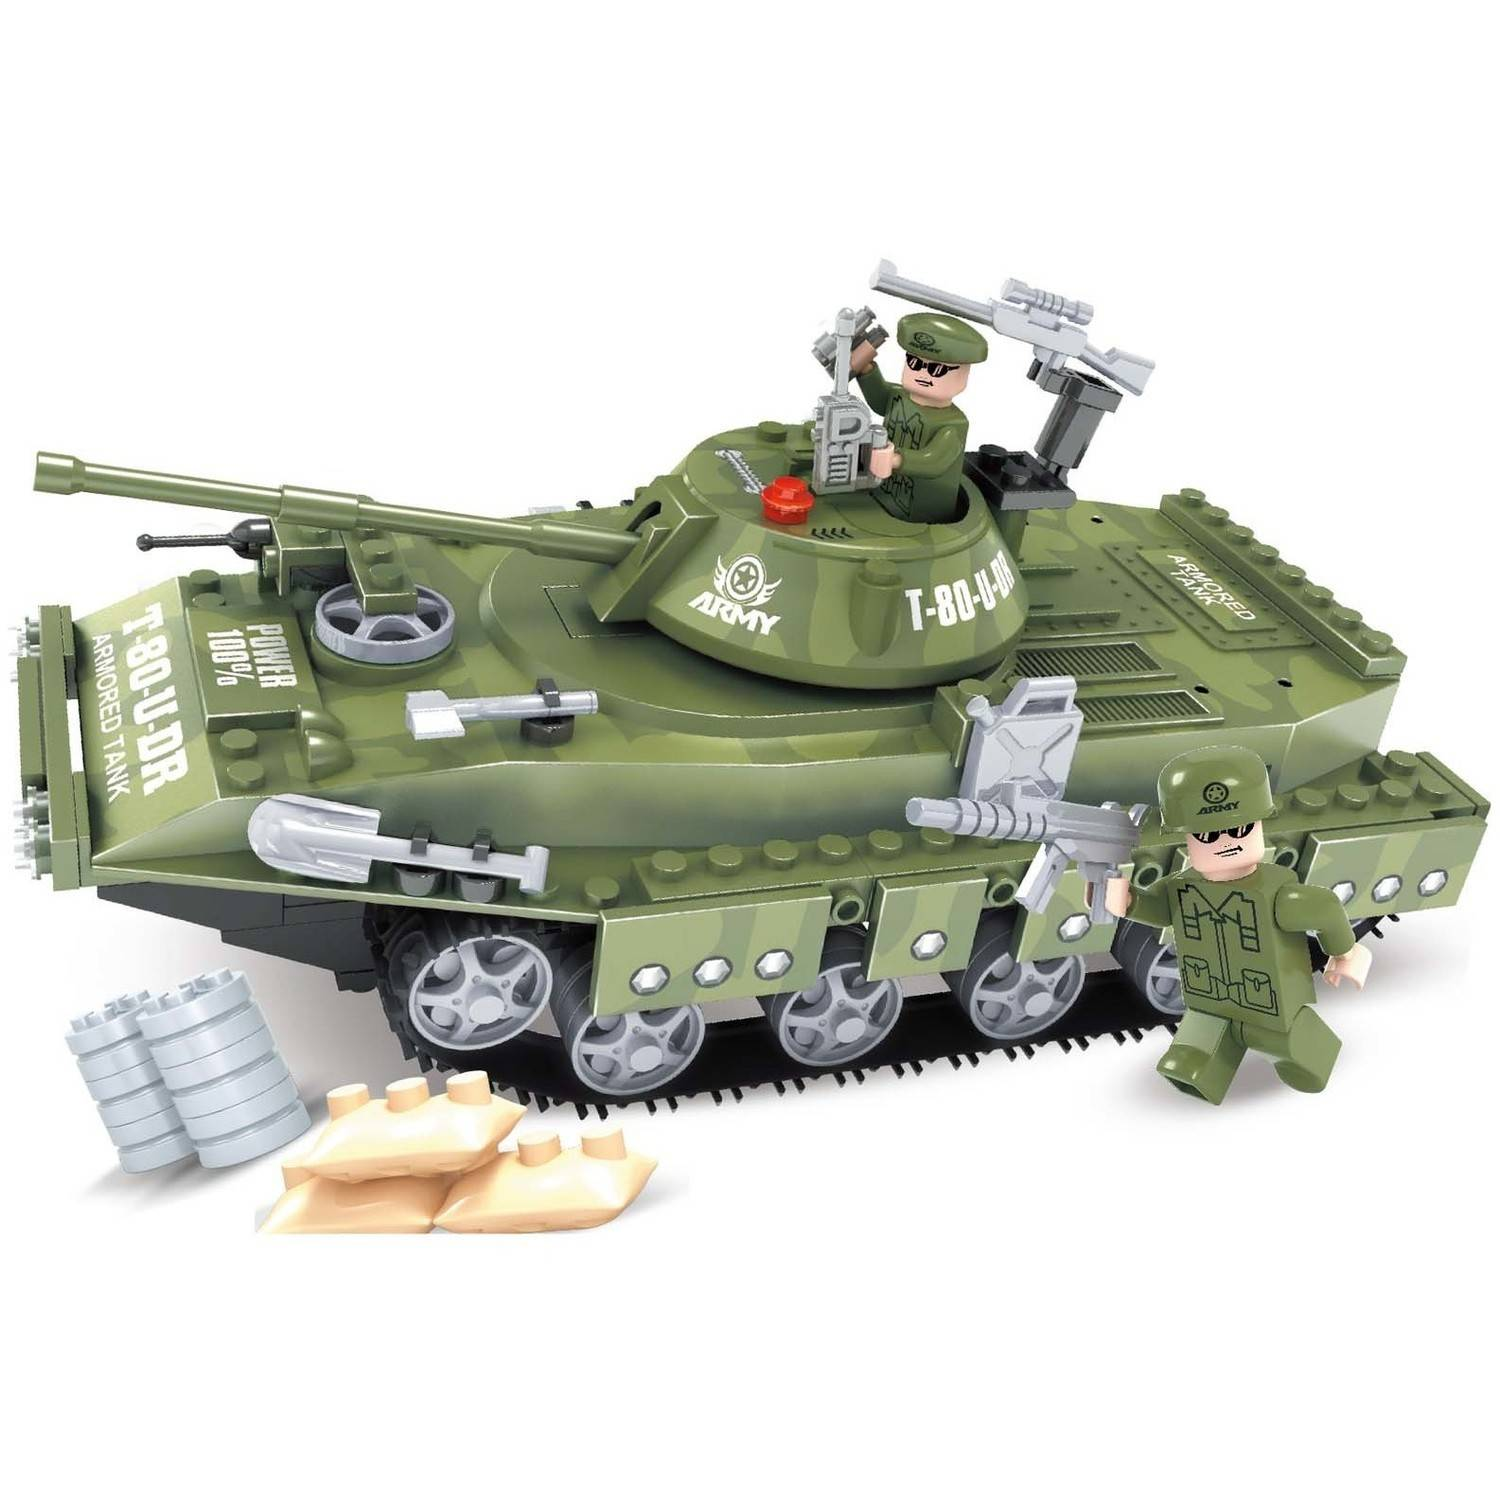 Bric Tek 213-Piece Building Block Army Tank - Compatible with Major Brands Multi-Colored